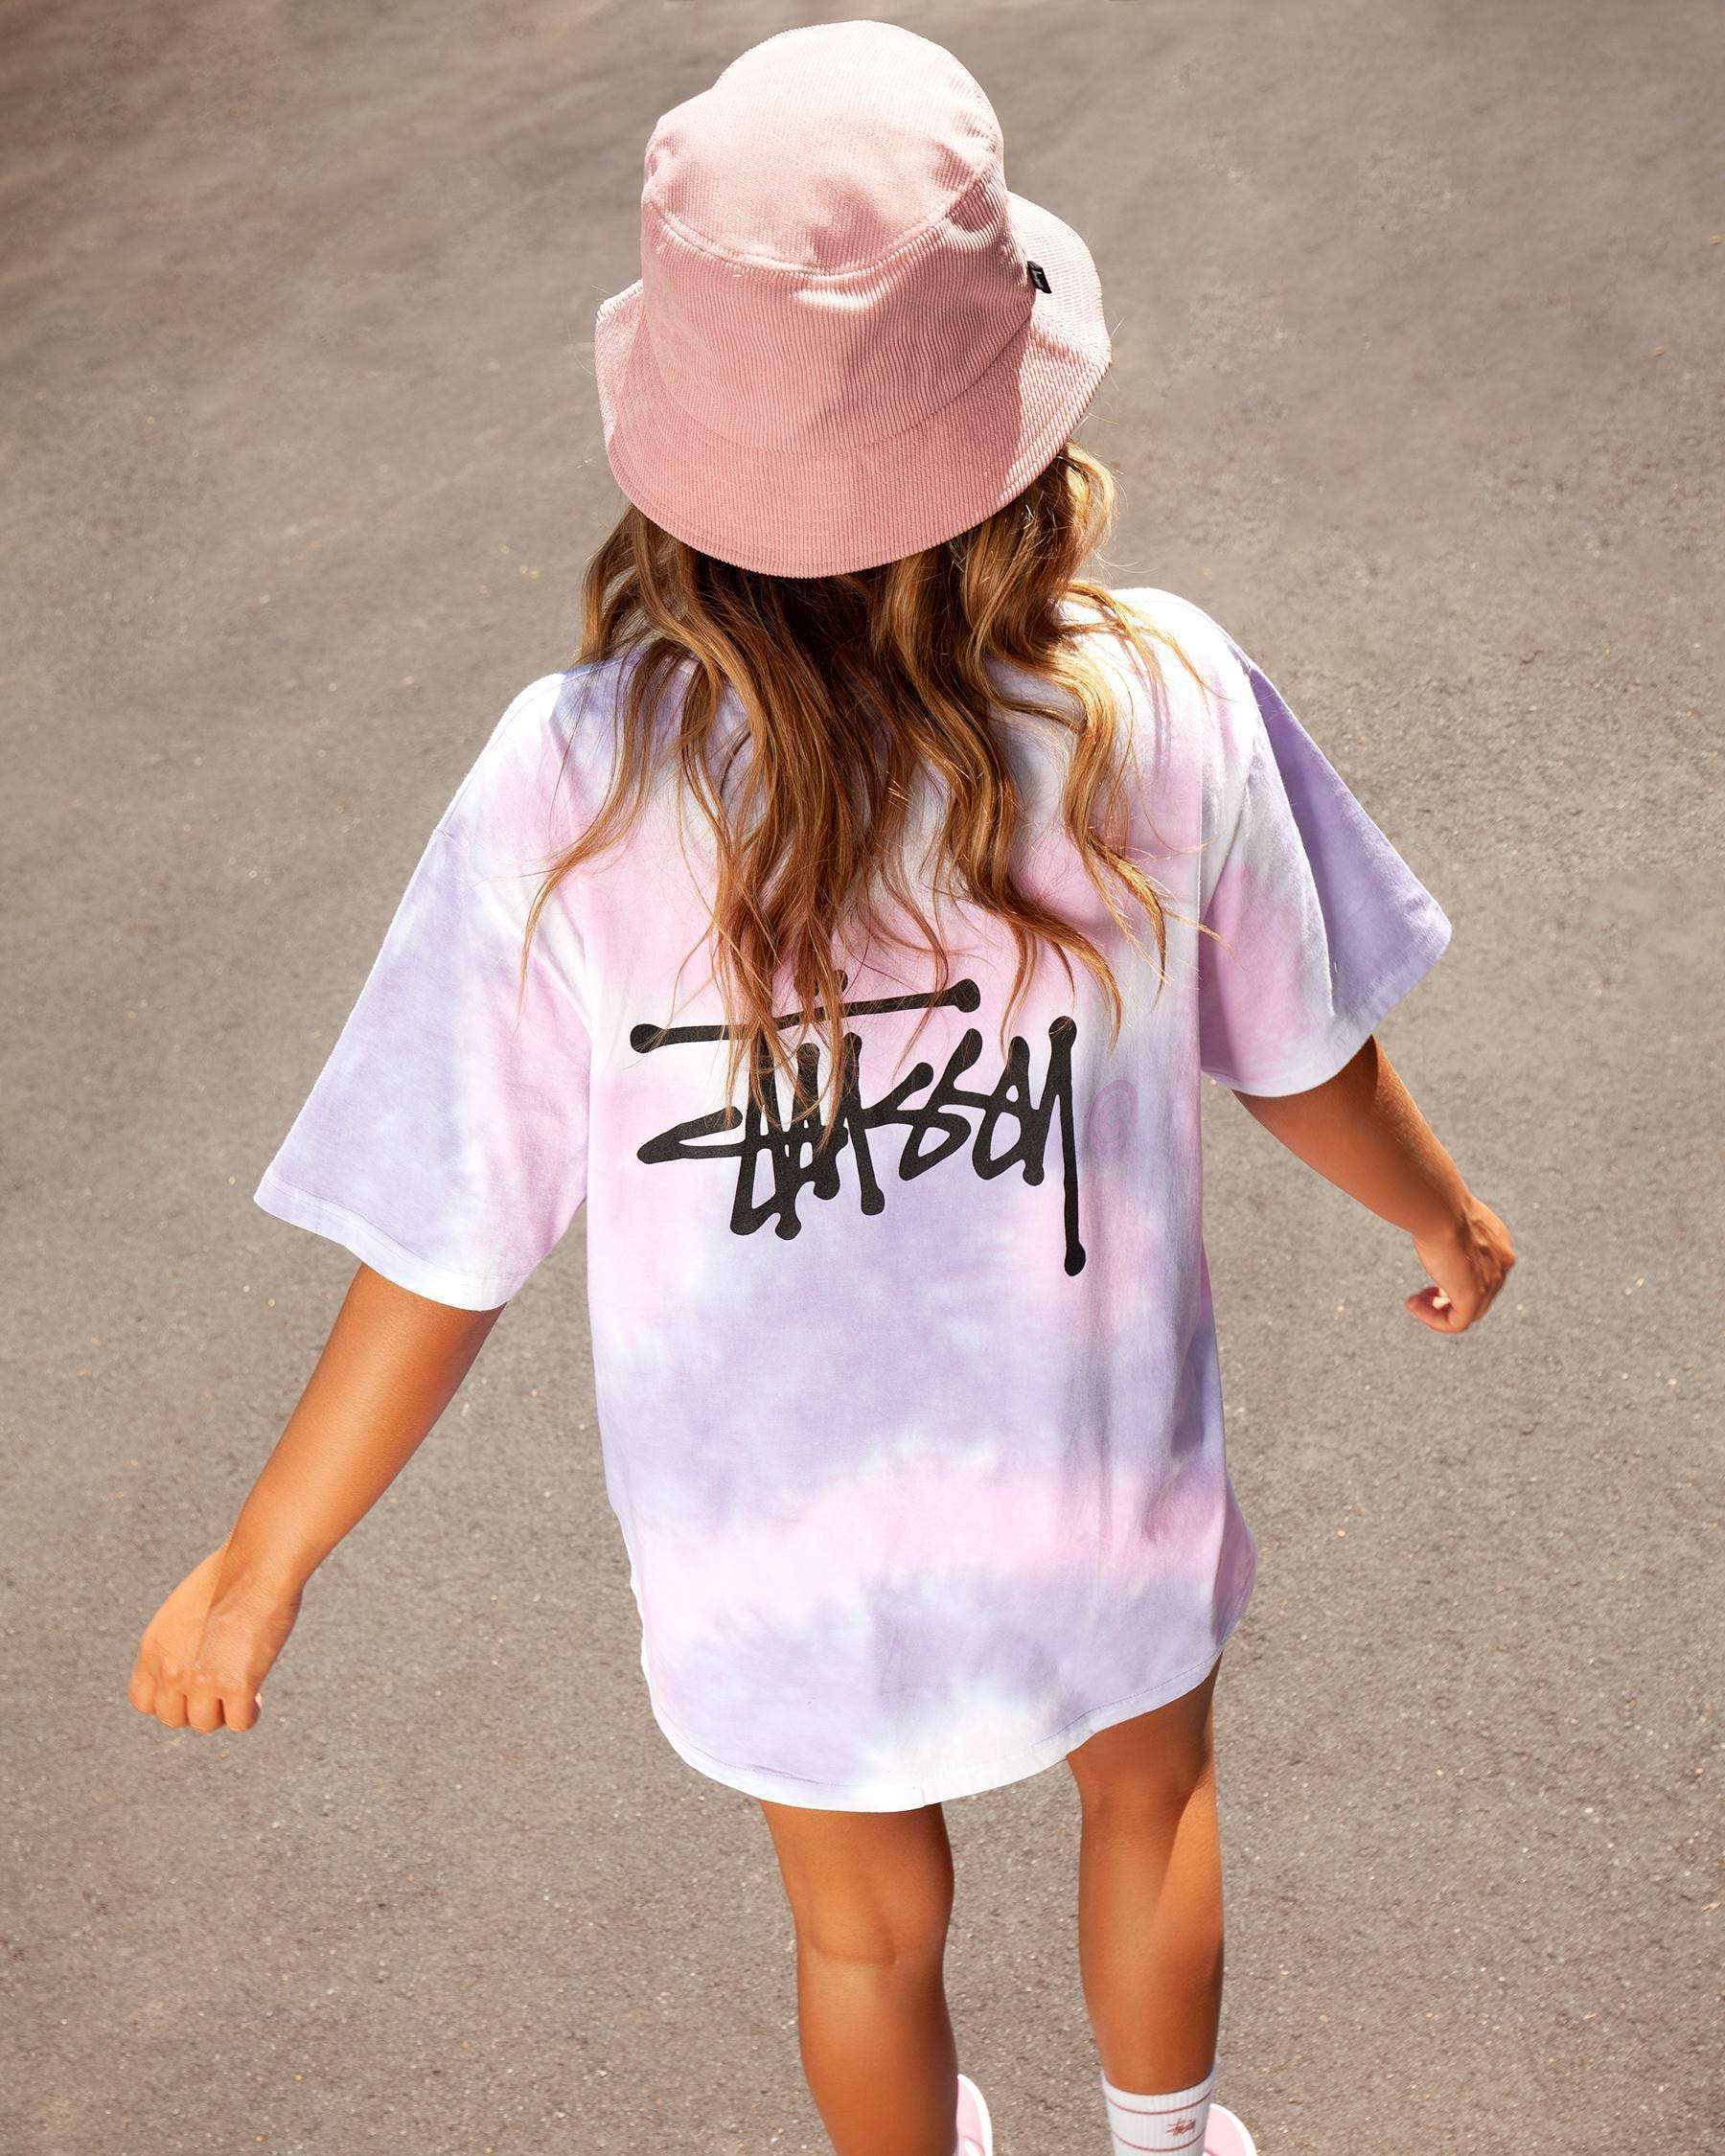 shop stussy clothing